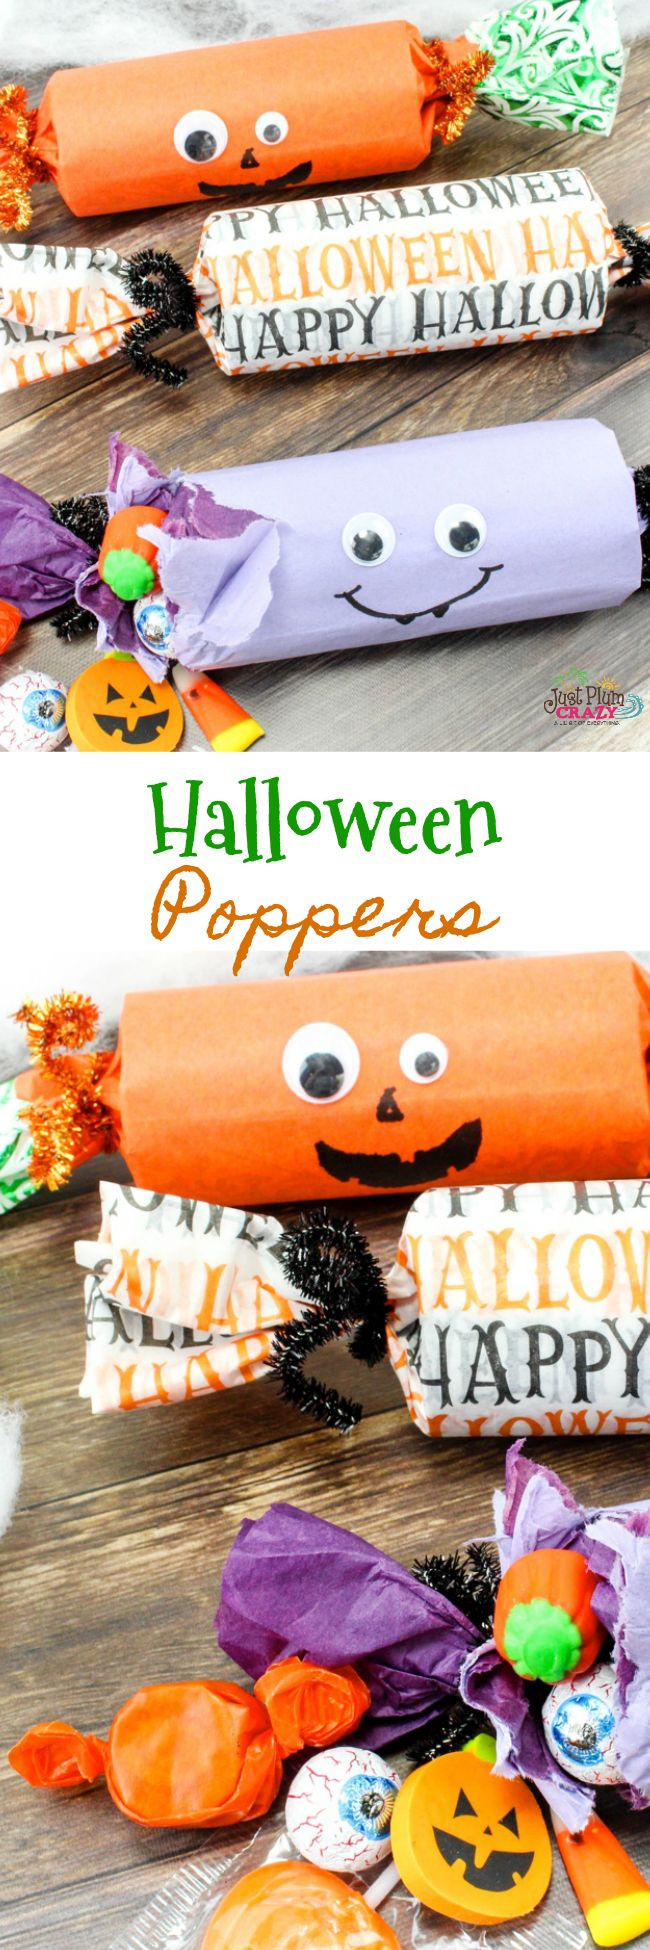 360 best Kids - Halloween Ideas images on Pinterest Halloween kid - Kid Friendly Halloween Decorations